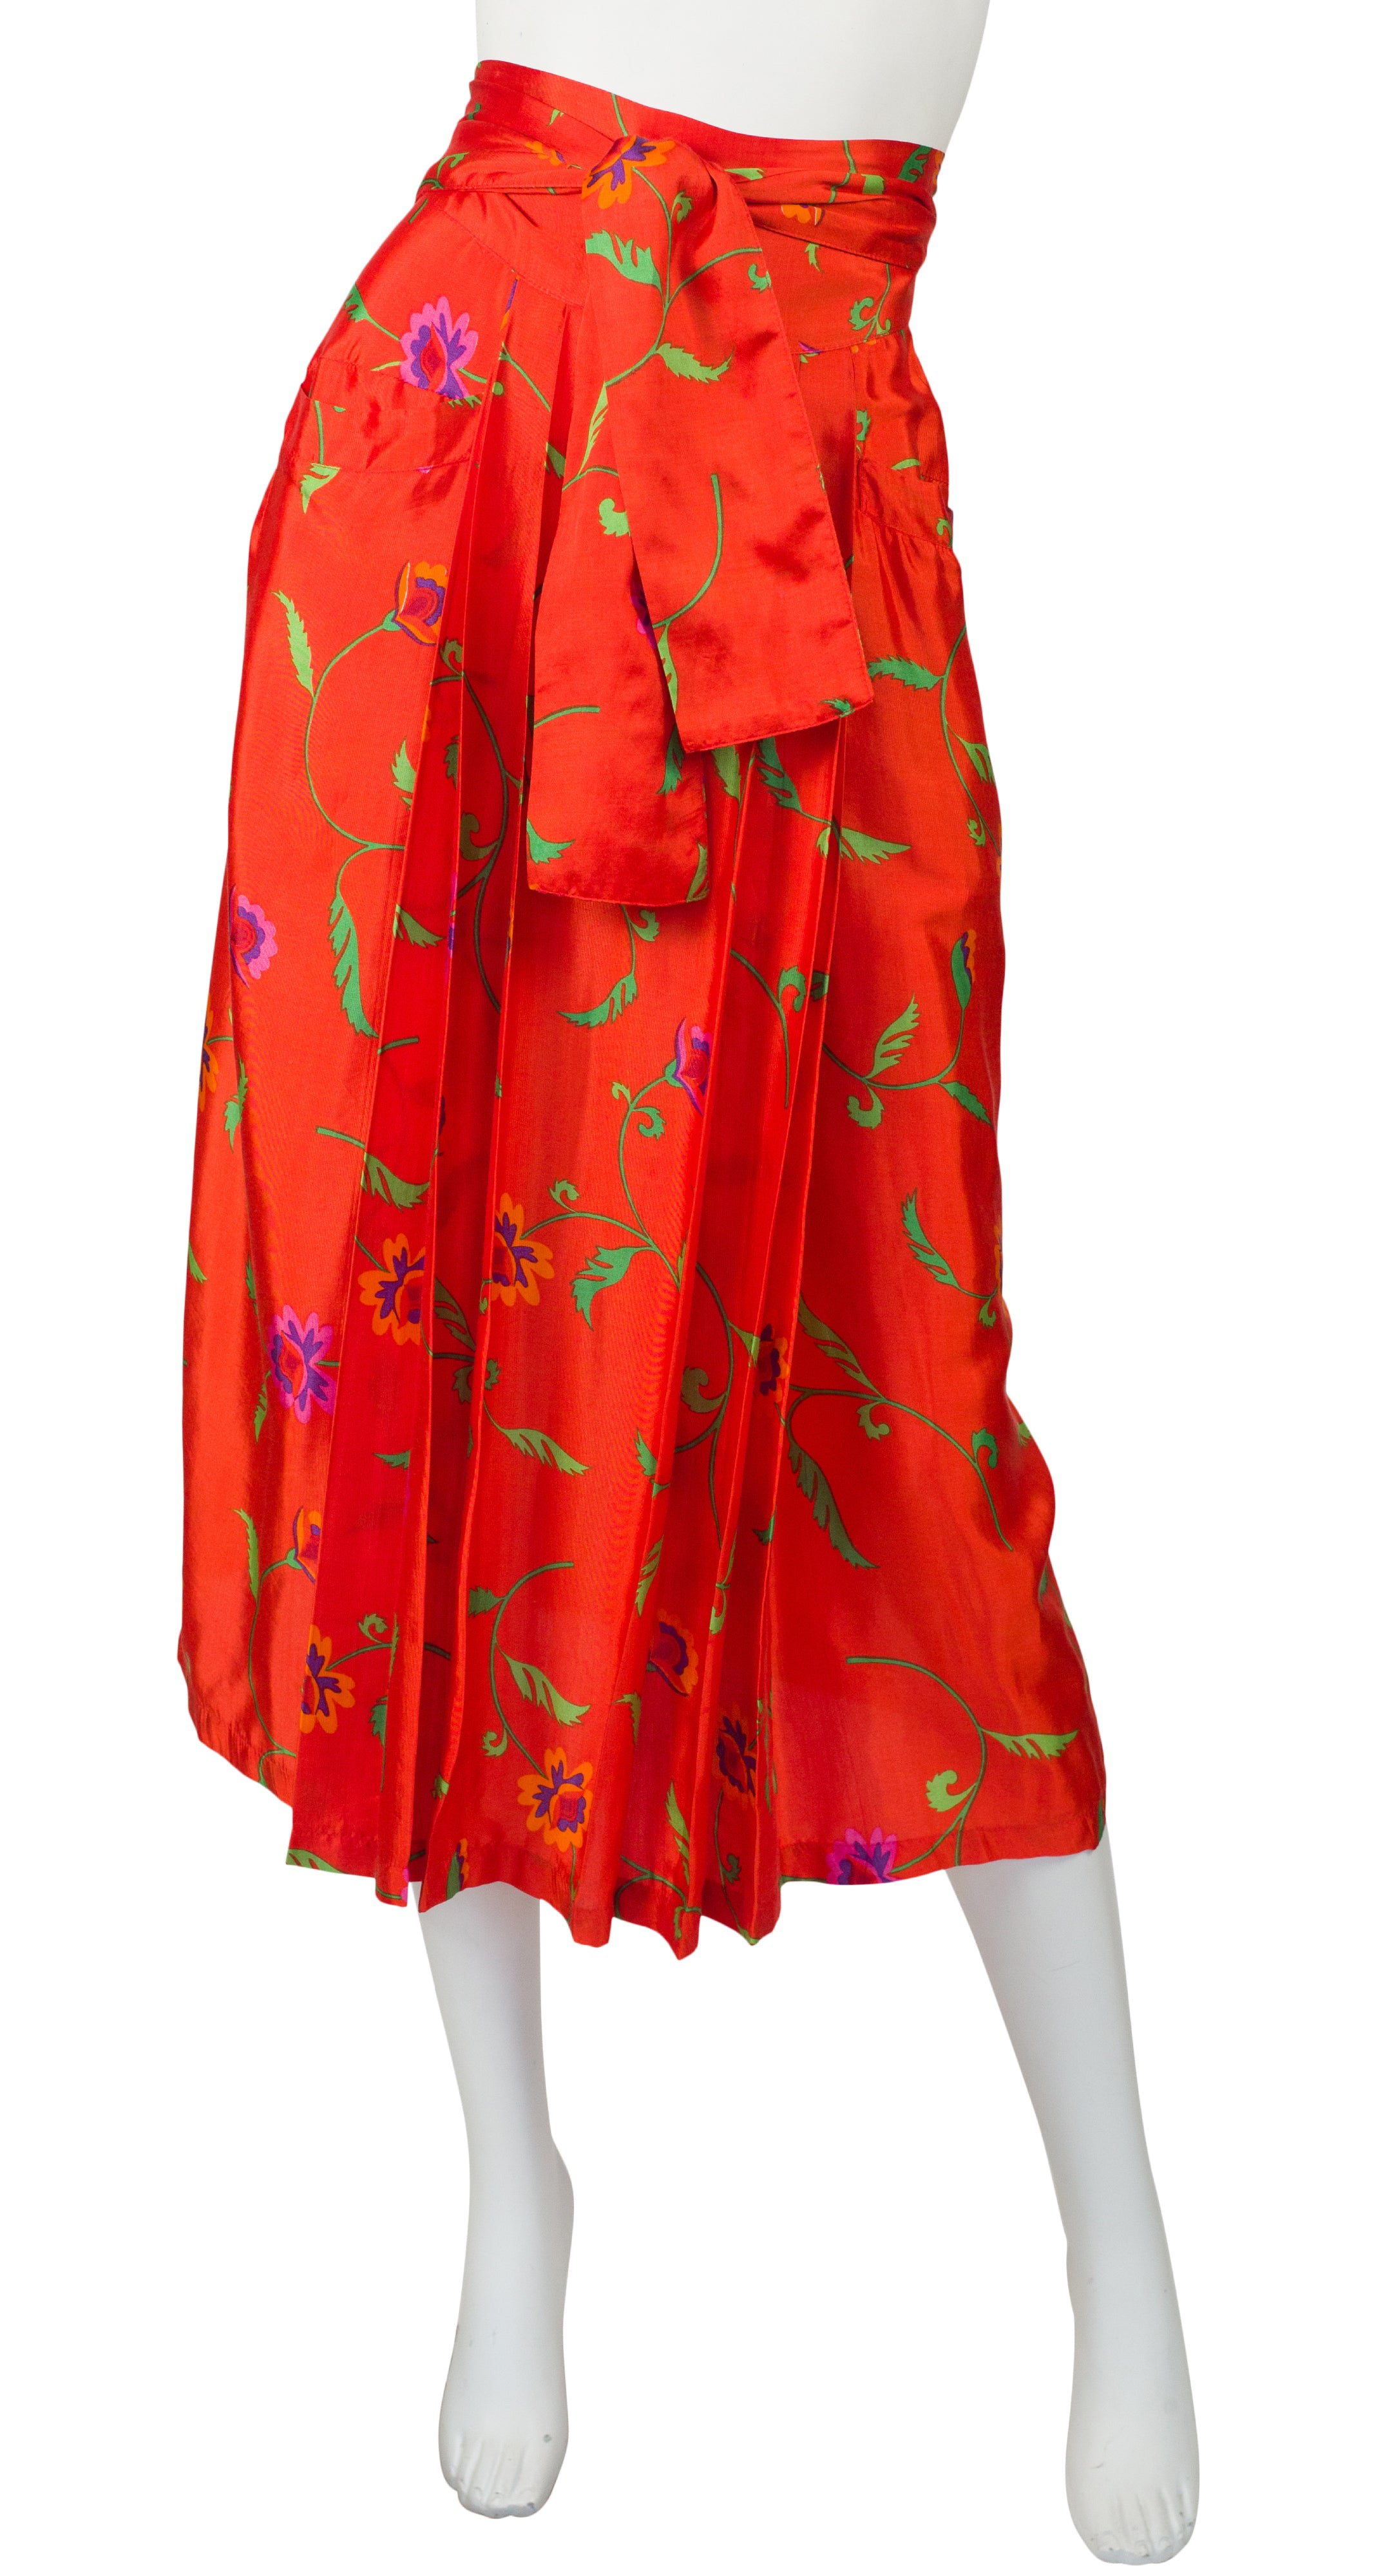 1978 S/S Documented Floral Blood Orange Rayon Wrap Skirt